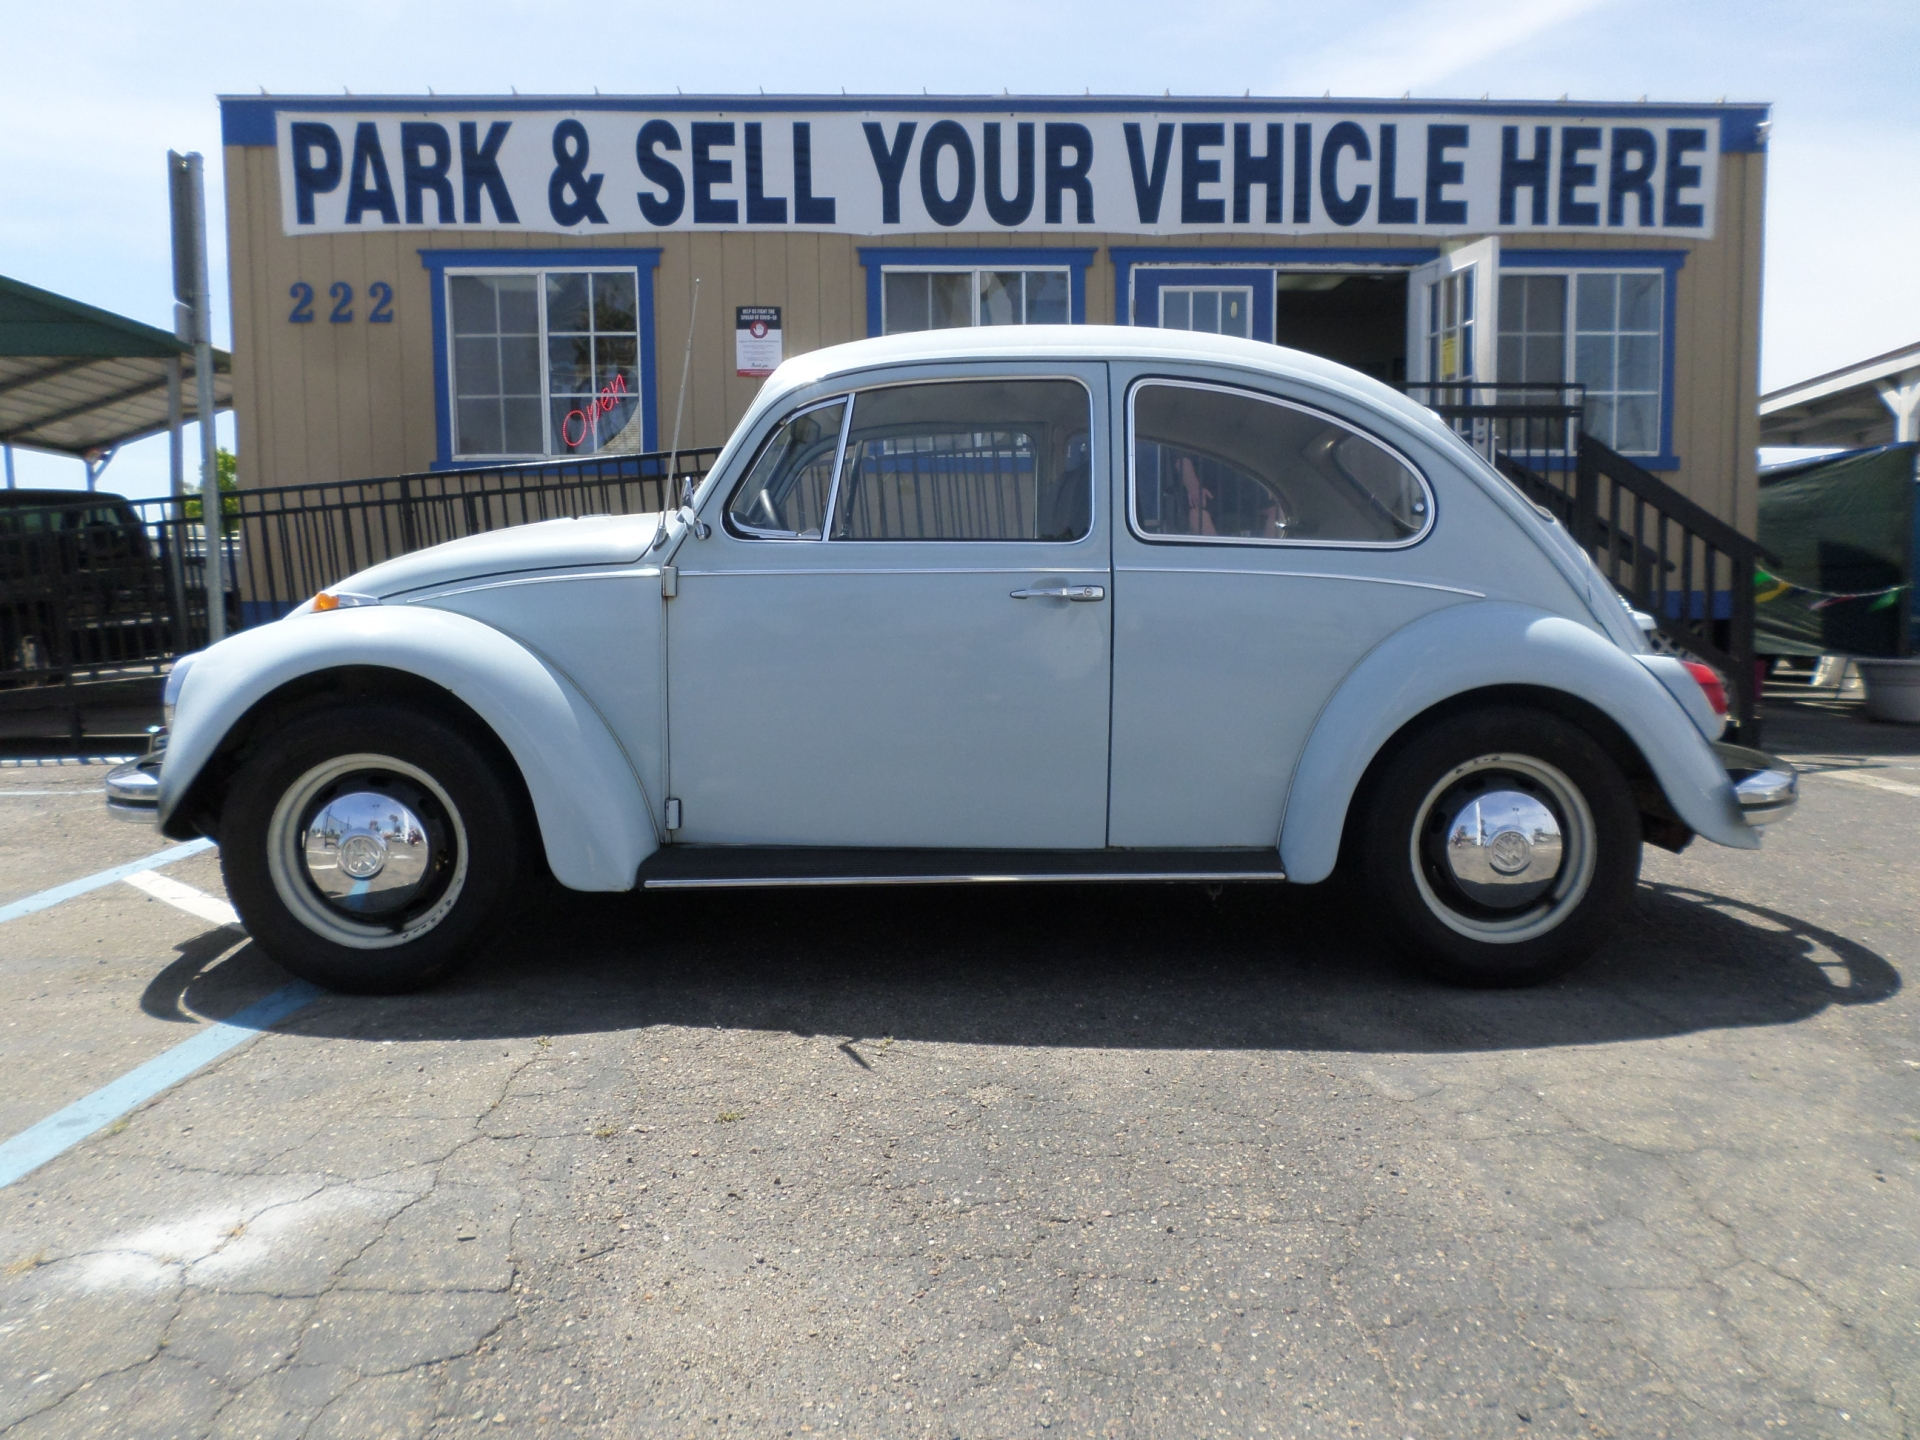 classic car for sale 1969 volkswagen bug in lodi stockton ca lodi park and sell lodi park and sell